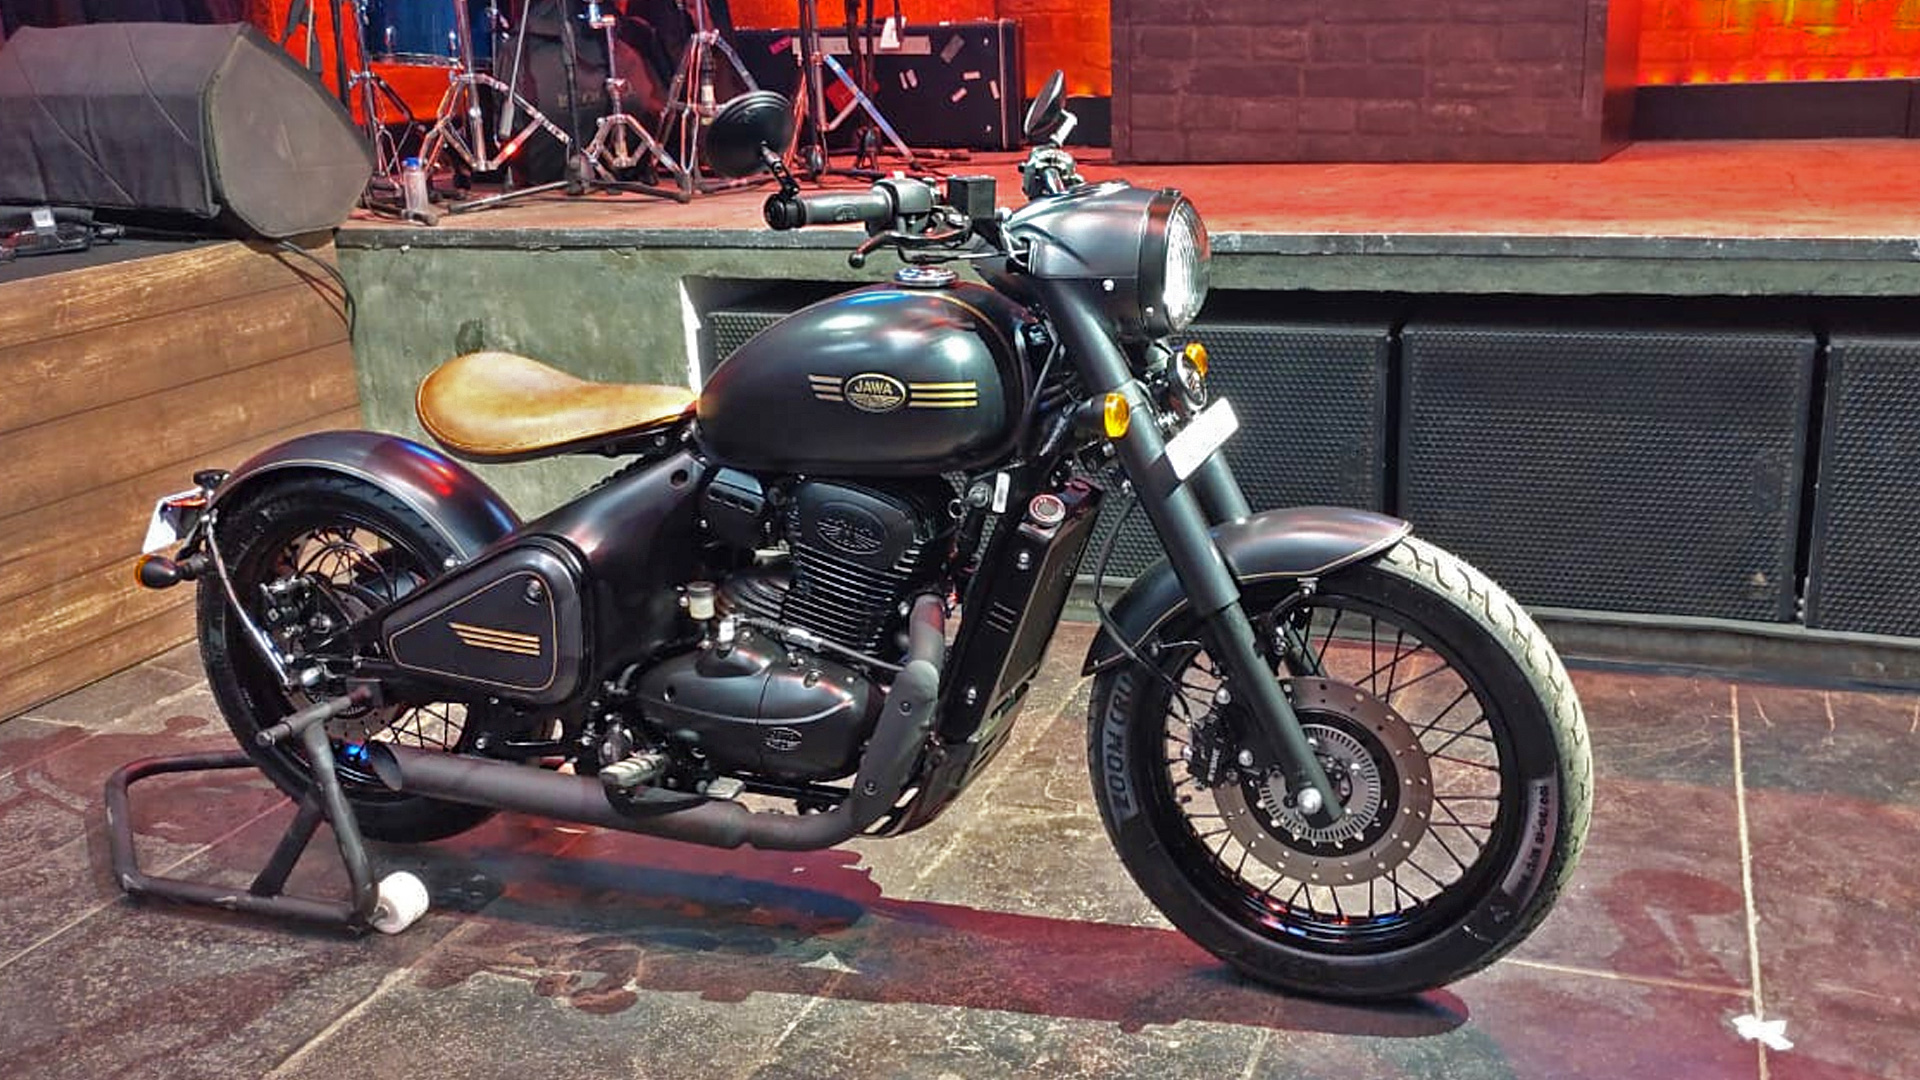 Jawa Motorcycles Perak Bobber 2020 Price Mileage Reviews Specification Gallery Overdrive